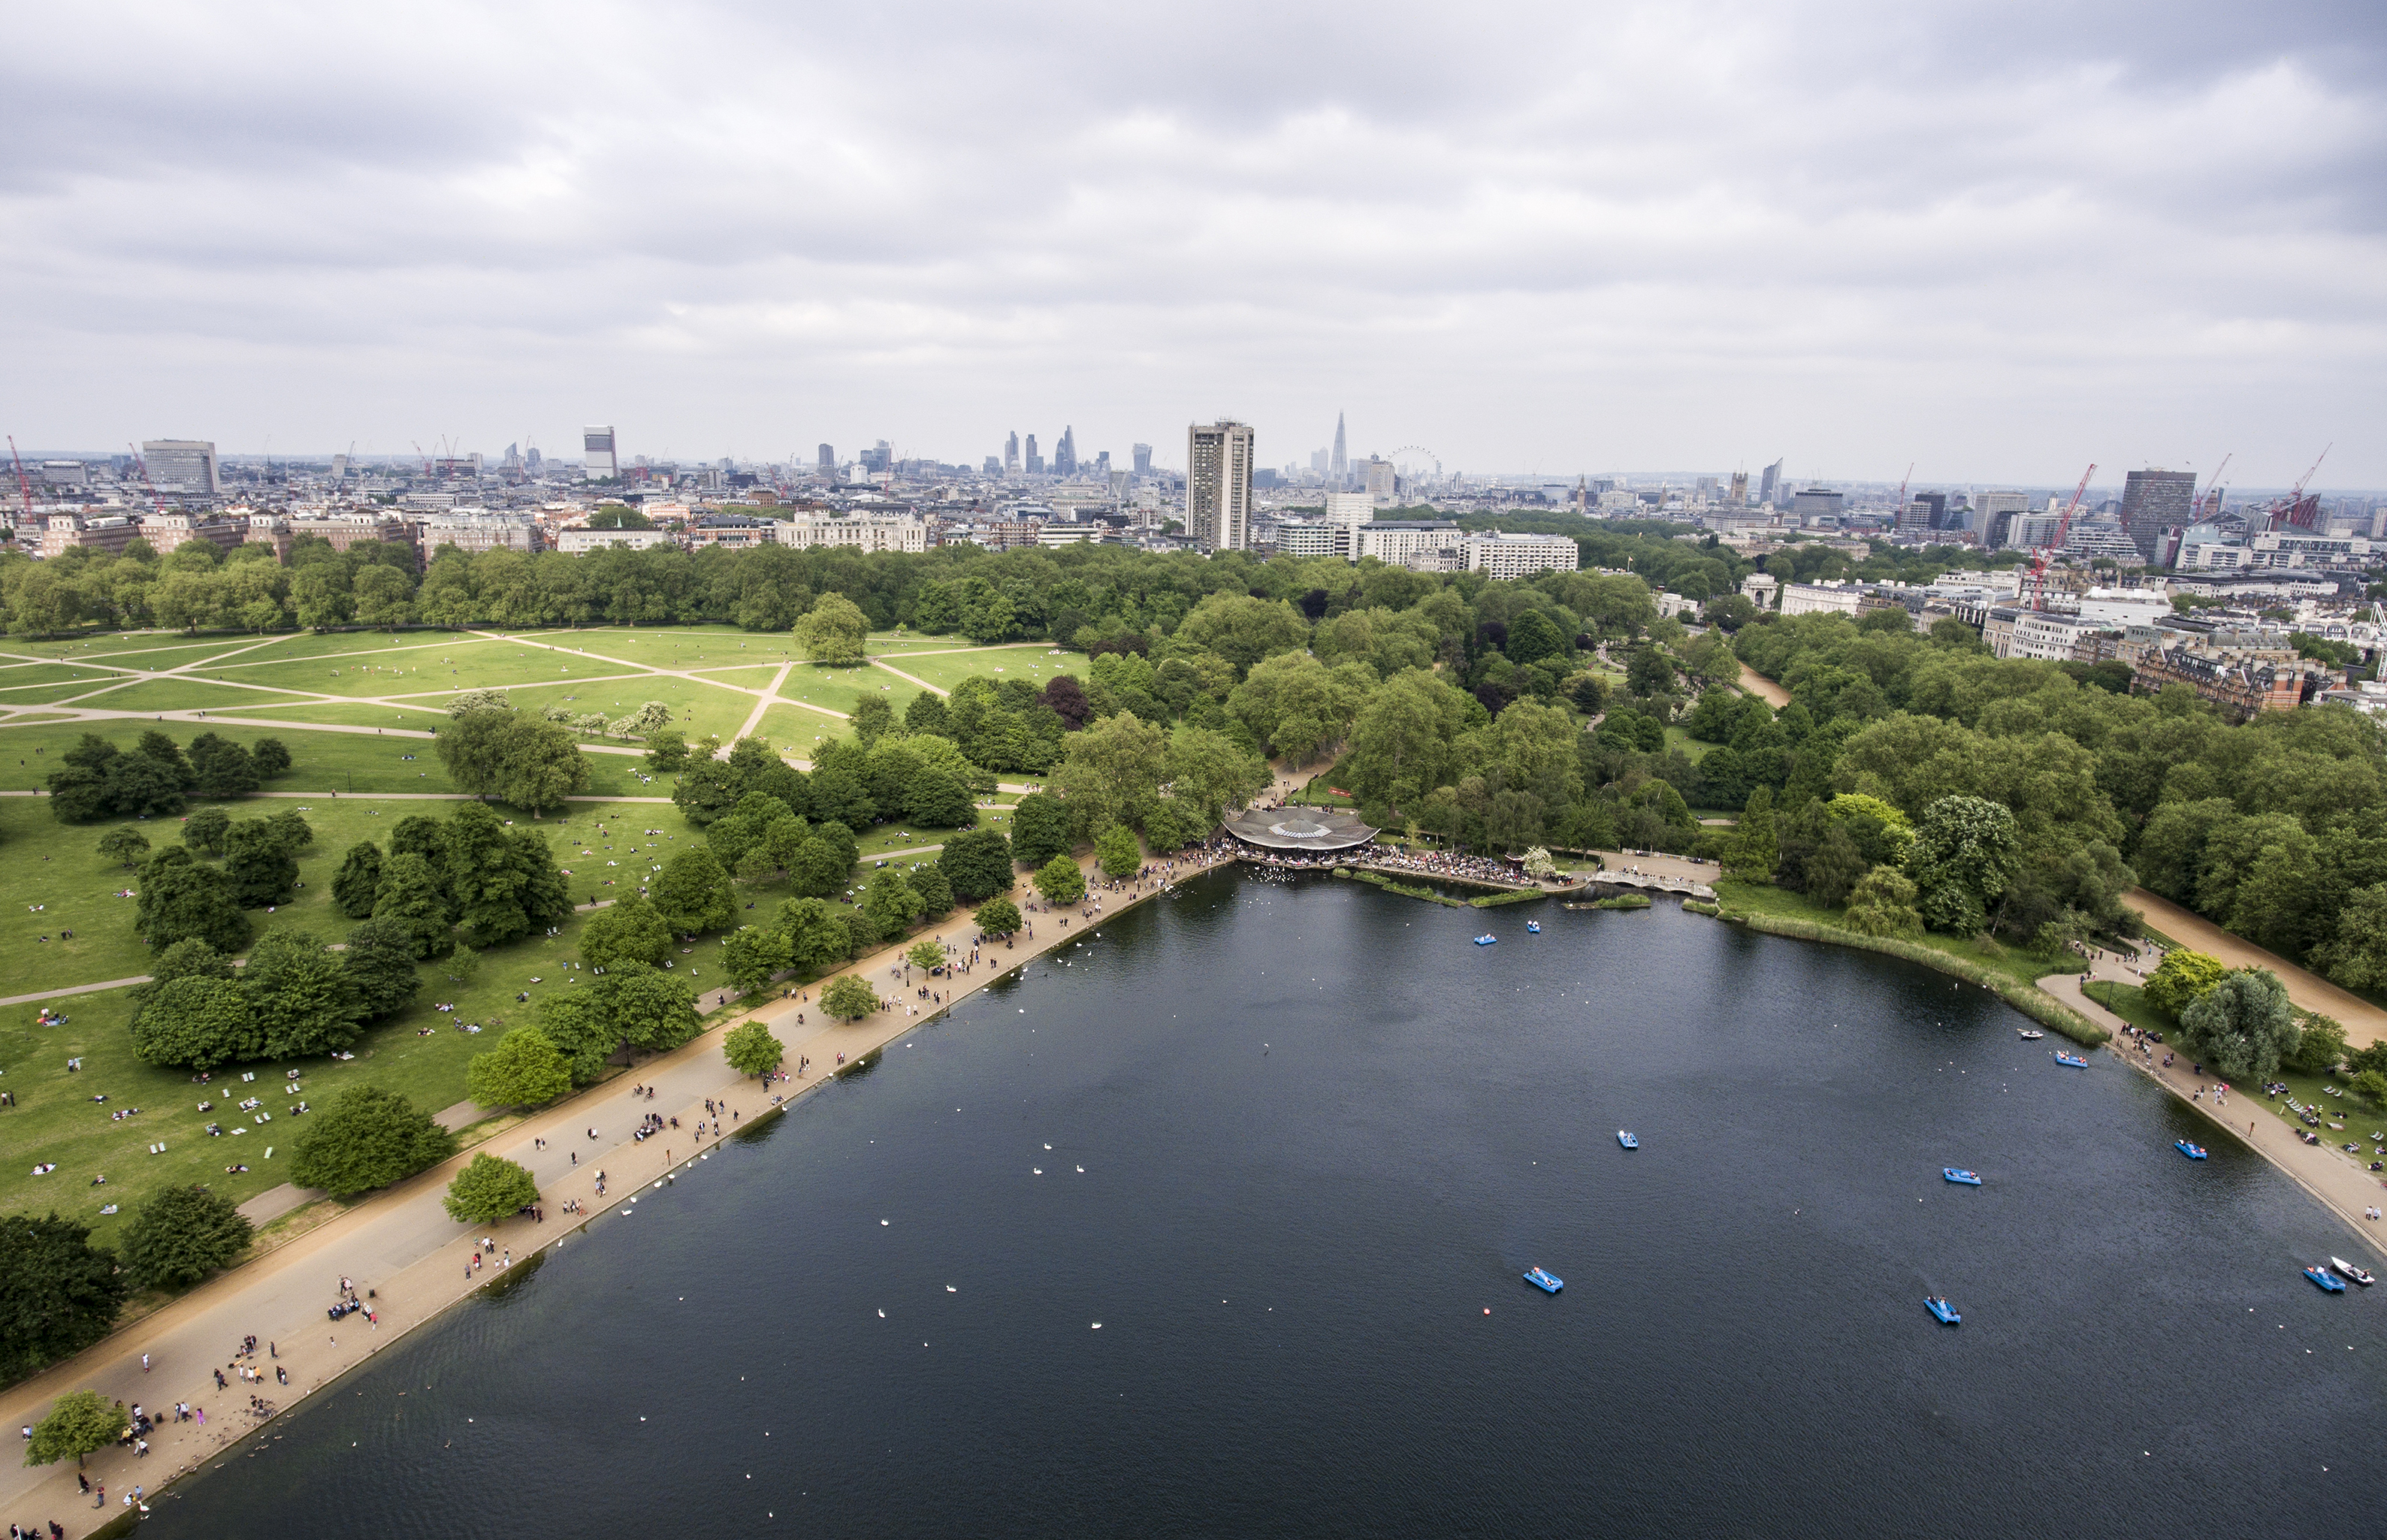 London big hyde park in the city for chilling aerial 3